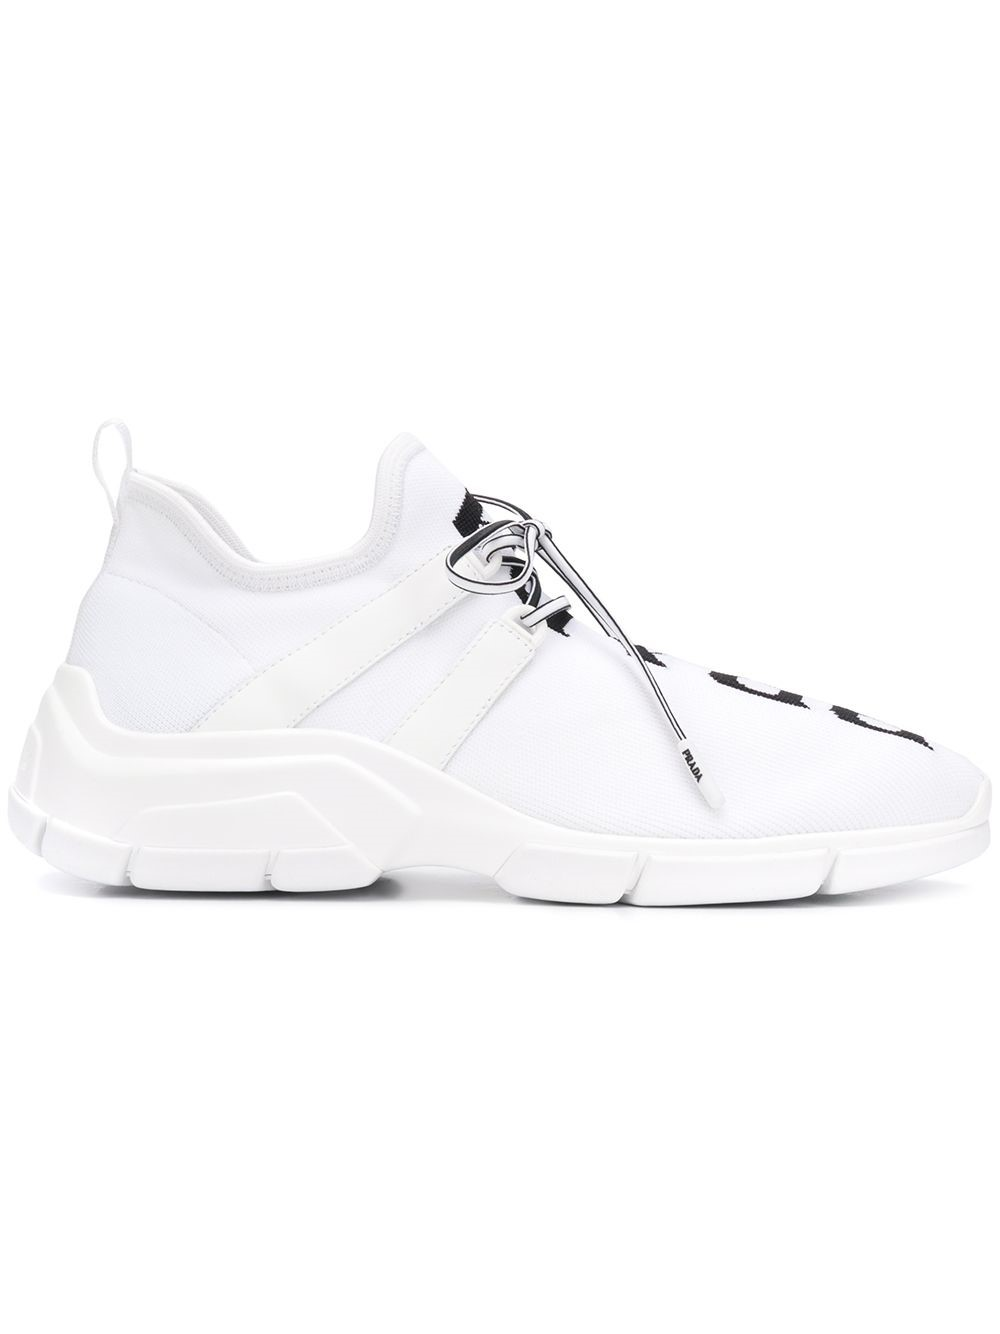 prada XY SNEAKERS available on